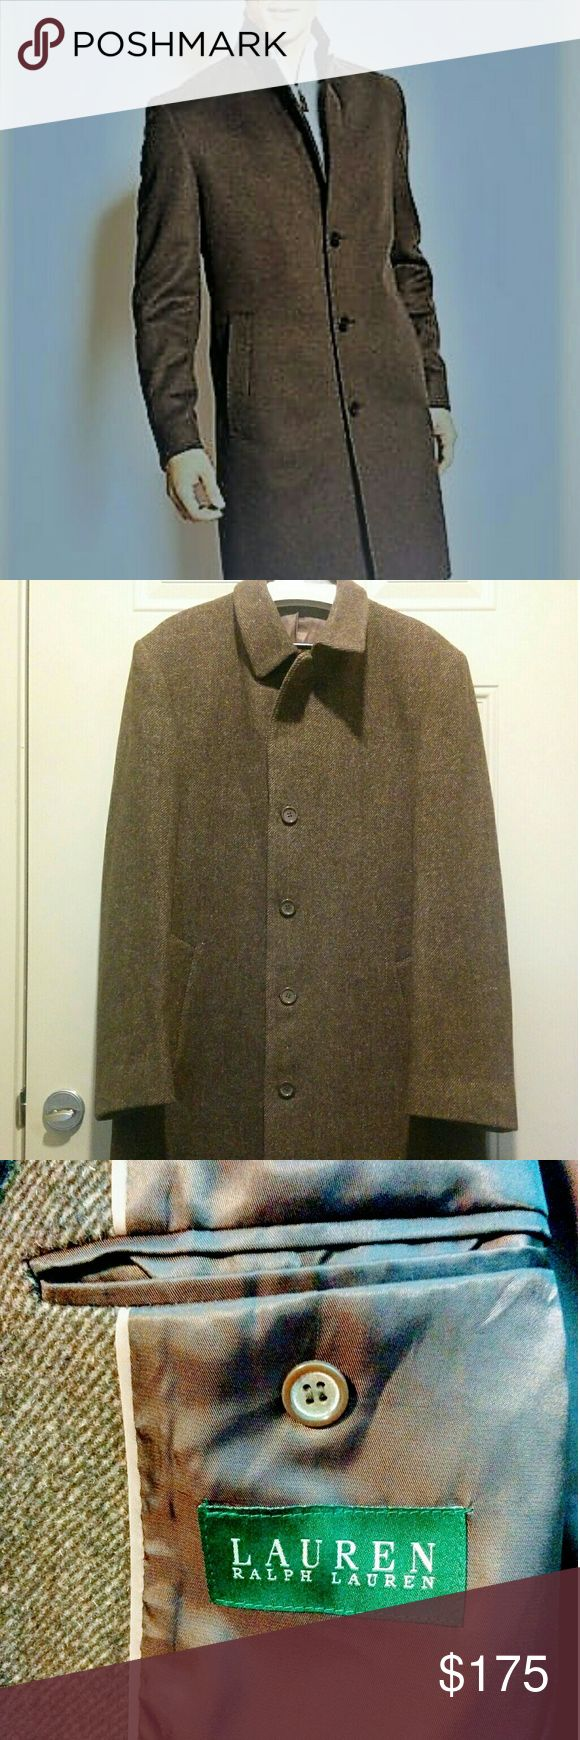 Lauren Ralph Lauren wool full length coat for men This is a Full Length pea coat for men, the color is brown in chevron pattern. It's practically new, I bought it for my husband and since his been doing diet now it's too big for him. It has 5 buttons, great for office outfits Lauren Ralph Lauren Jackets & Coats Pea Coats